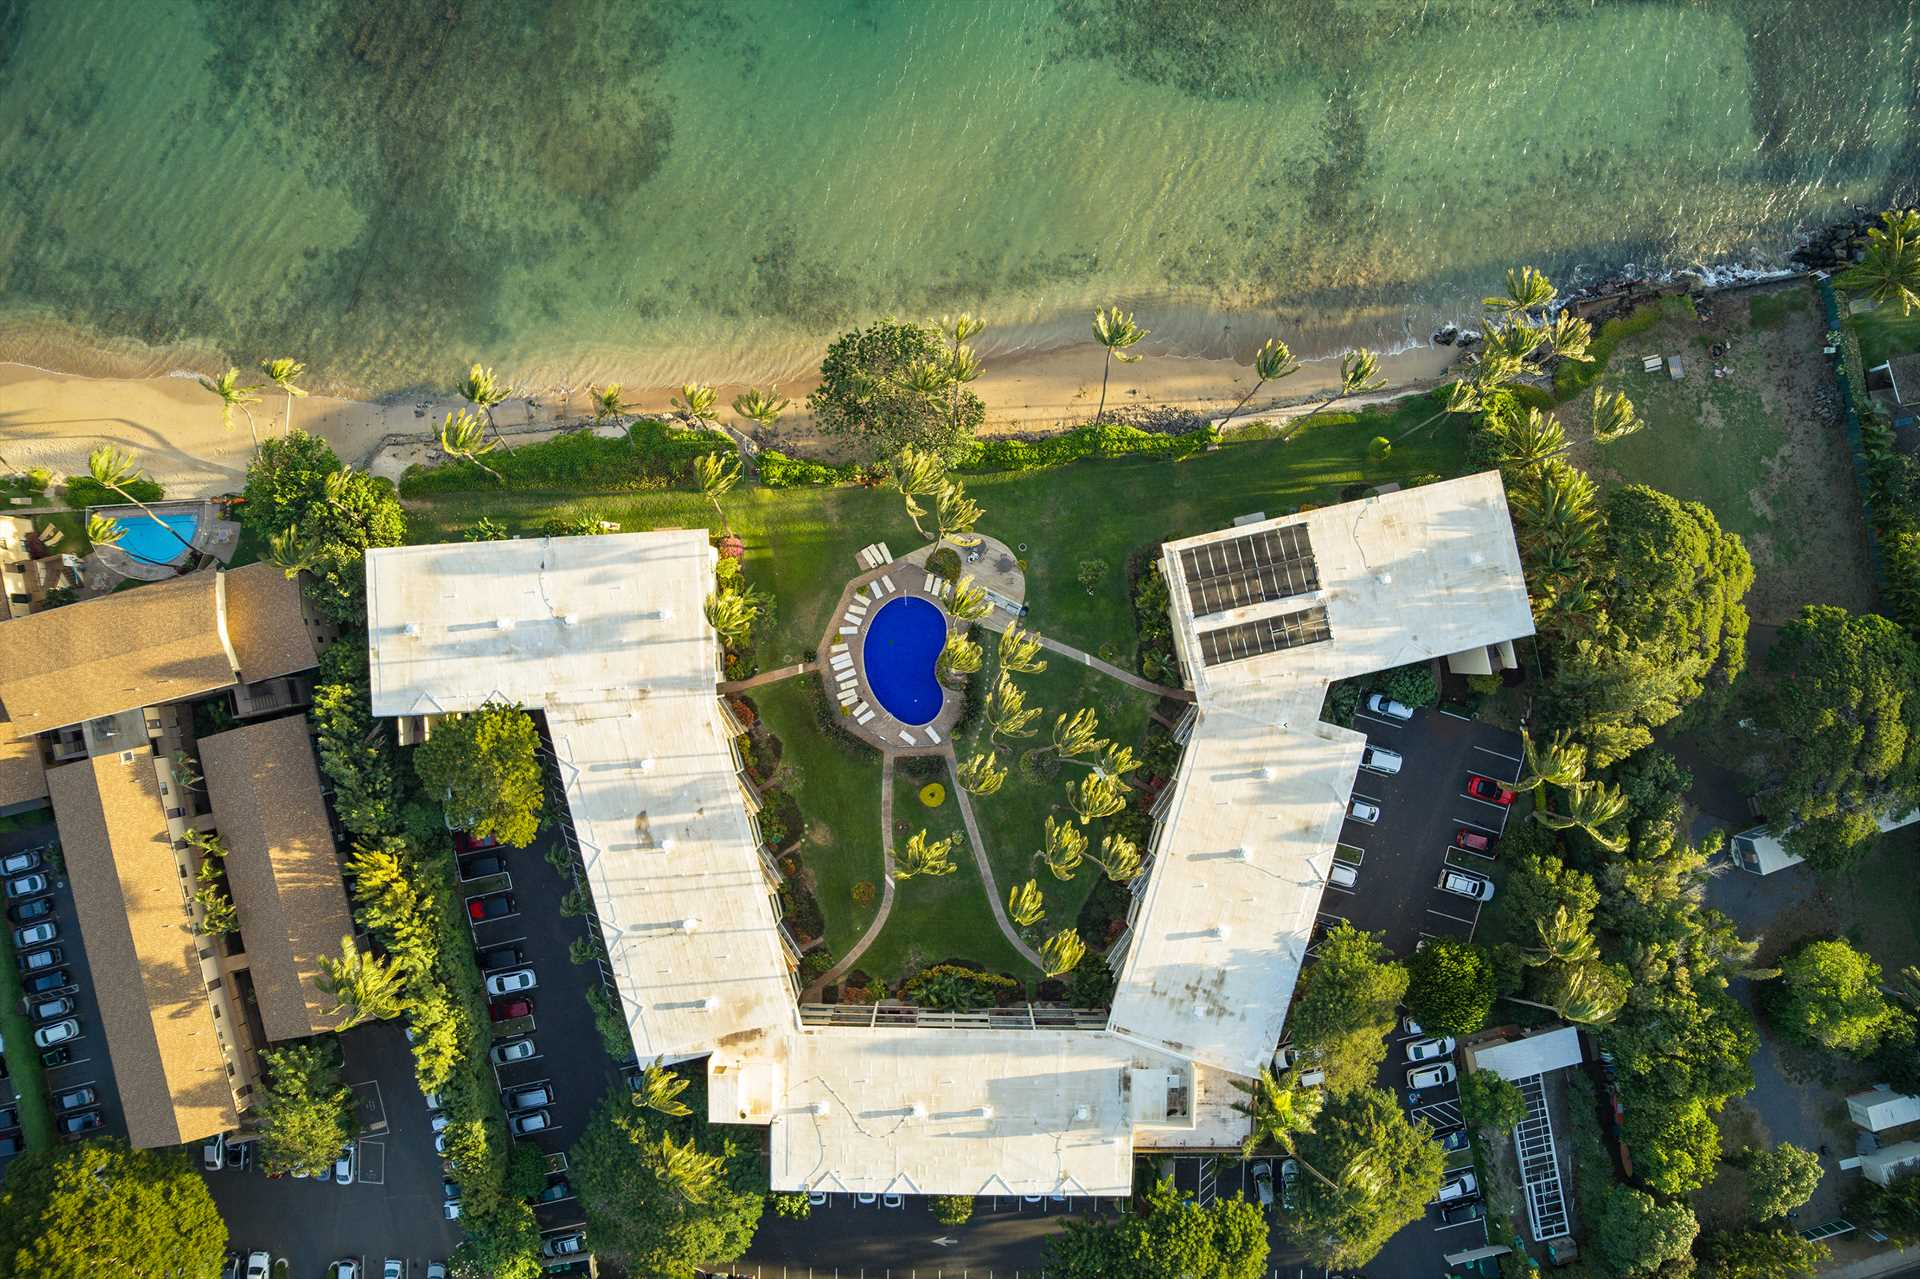 Aerial view of the Kanai A Nalu Resort with the West Maui Mo